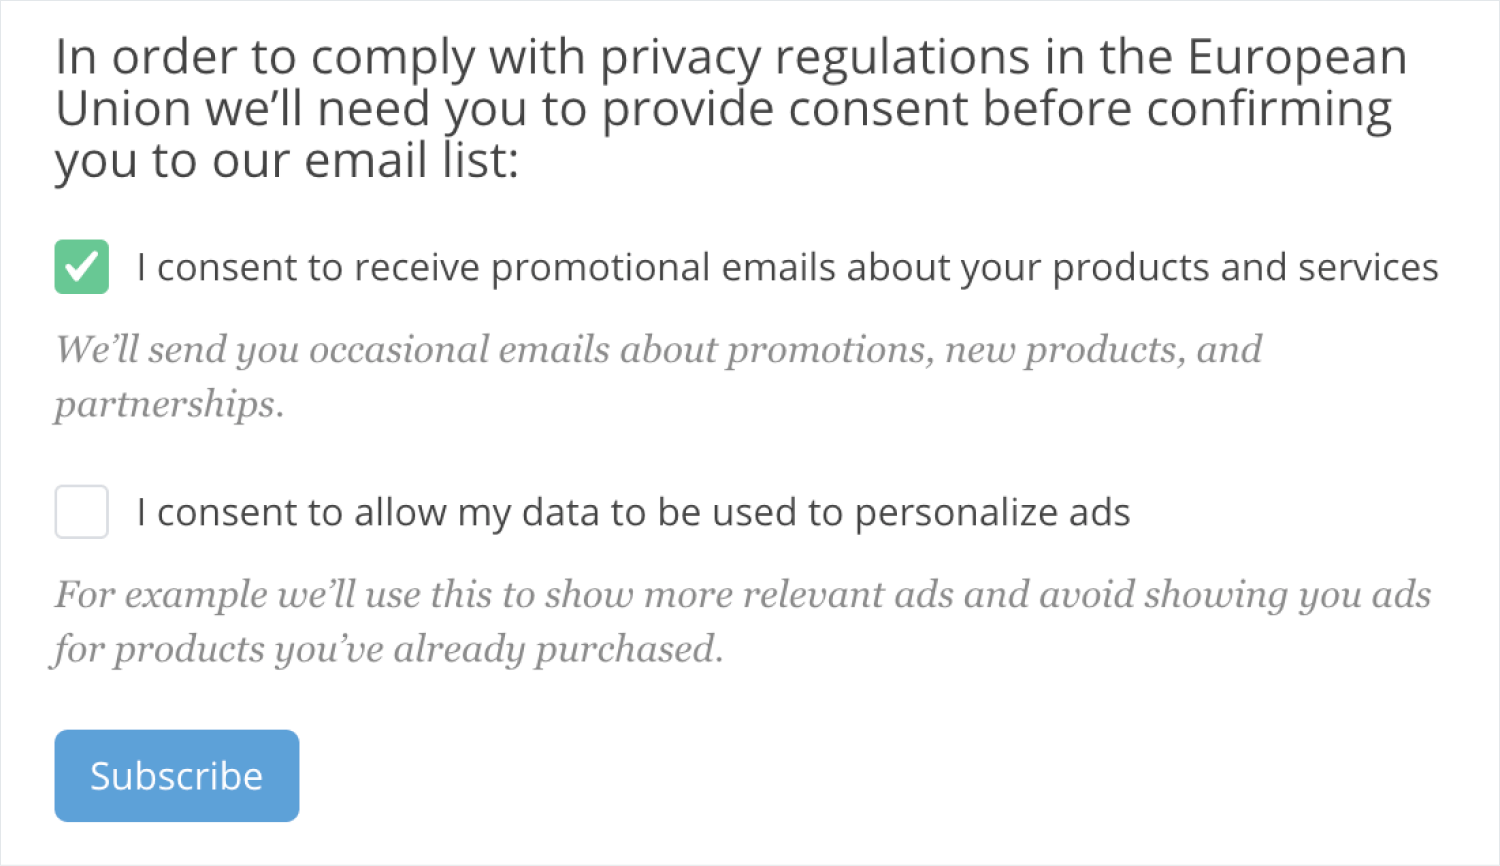 consent_GDPR.png